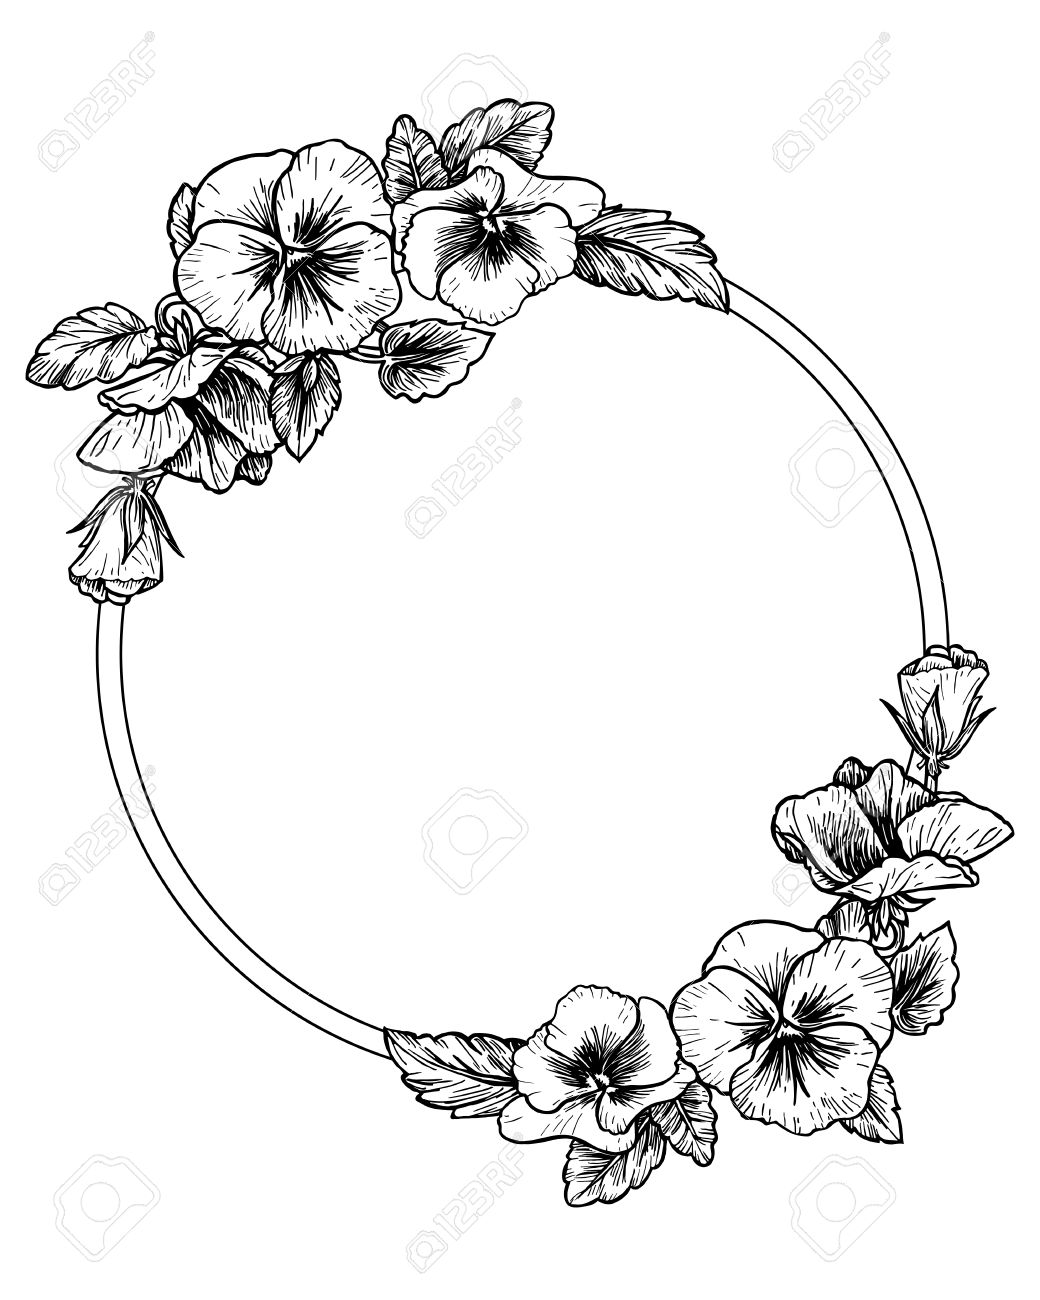 Frame With Hand Drawn Pansy Flowers Vector Illustration Vintage